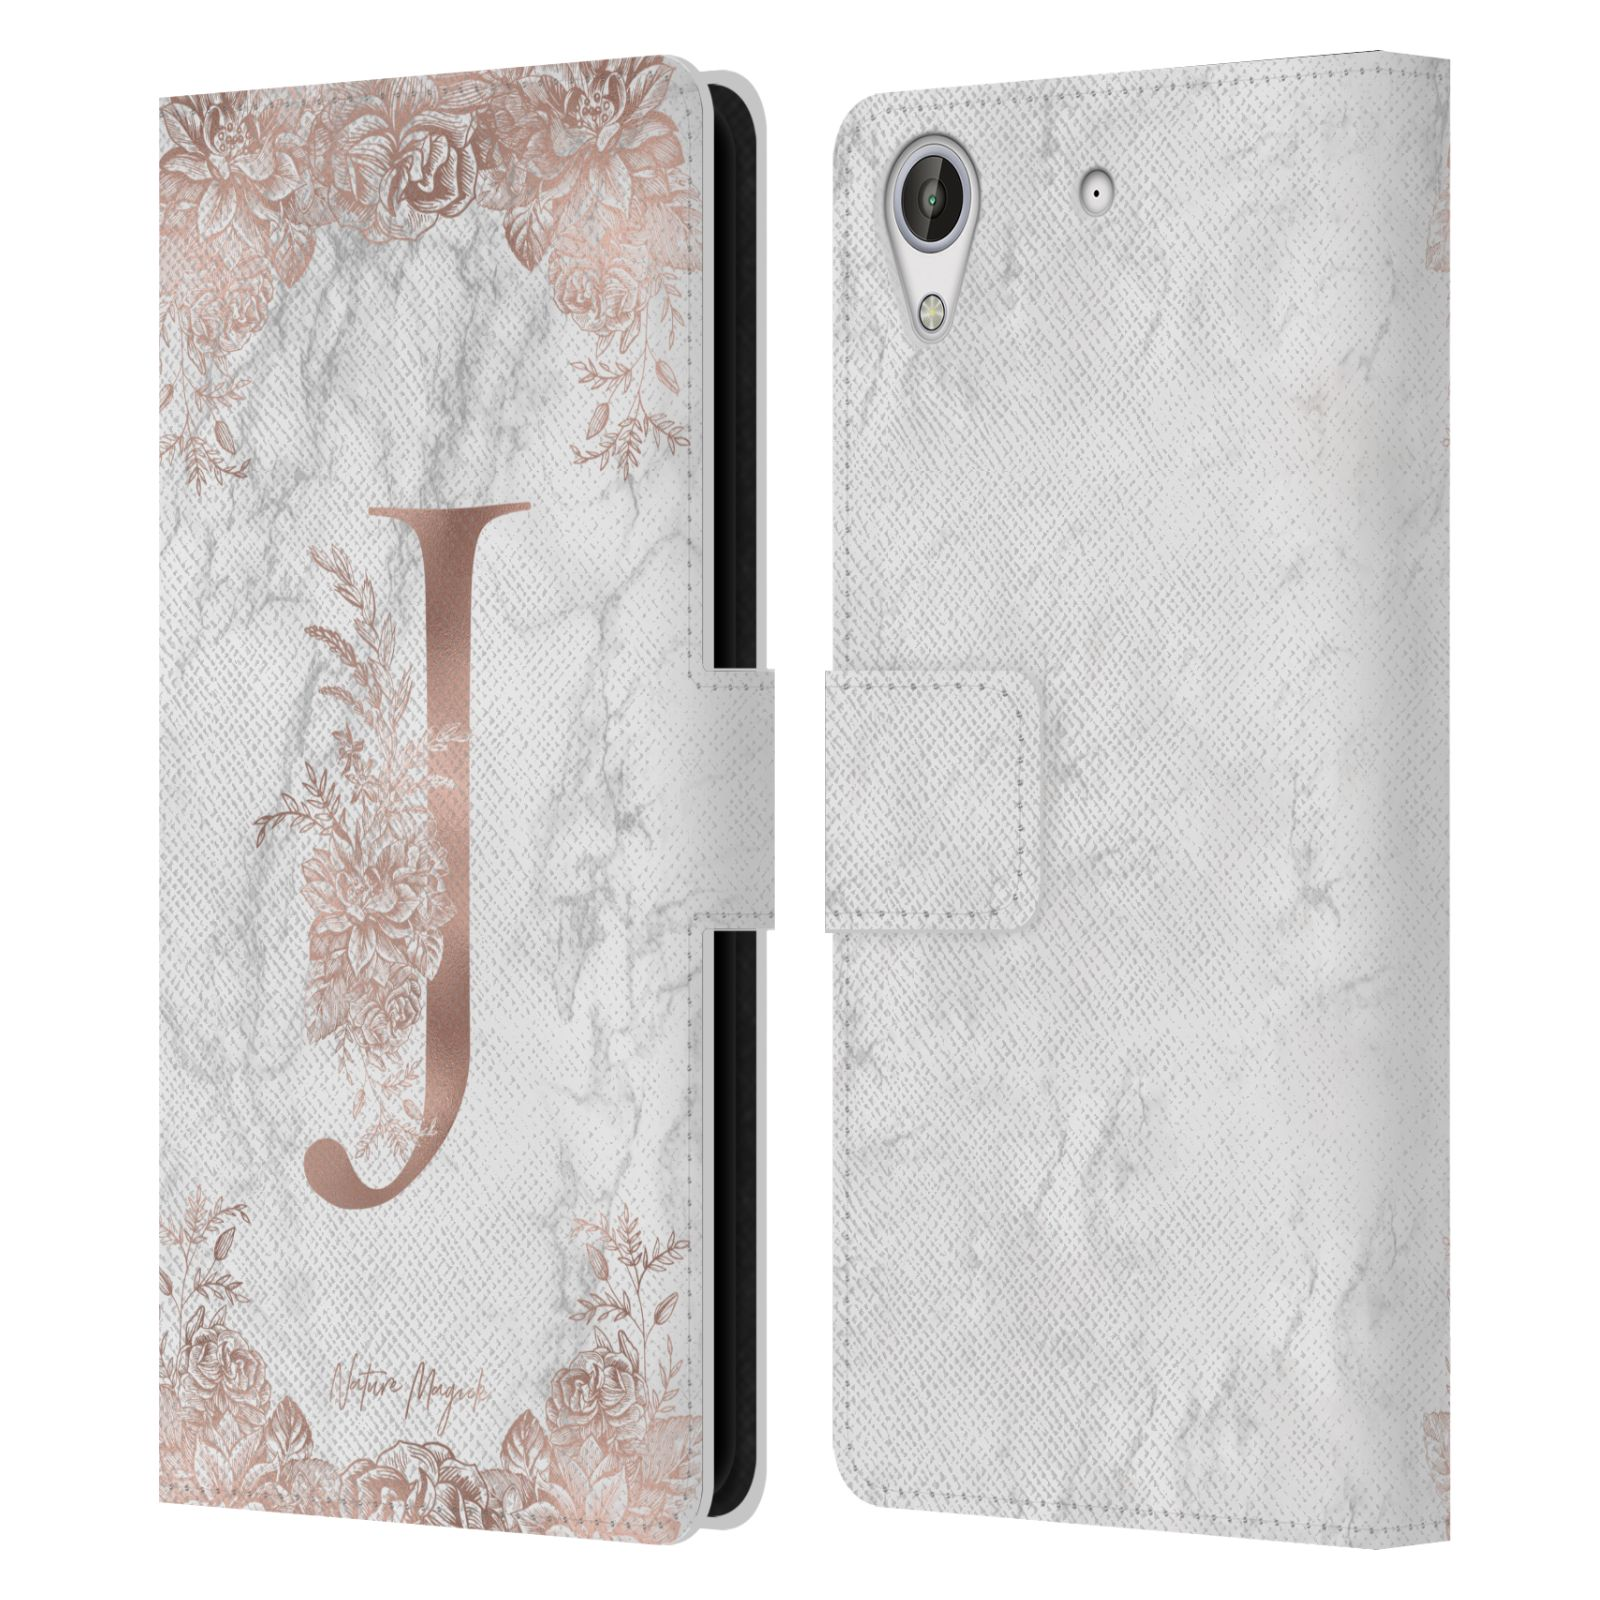 NATURE-MAGICK-ROSE-GOLD-MARBLE-MONOGRAM-LEATHER-BOOK-CASE-FOR-HTC-PHONES-2